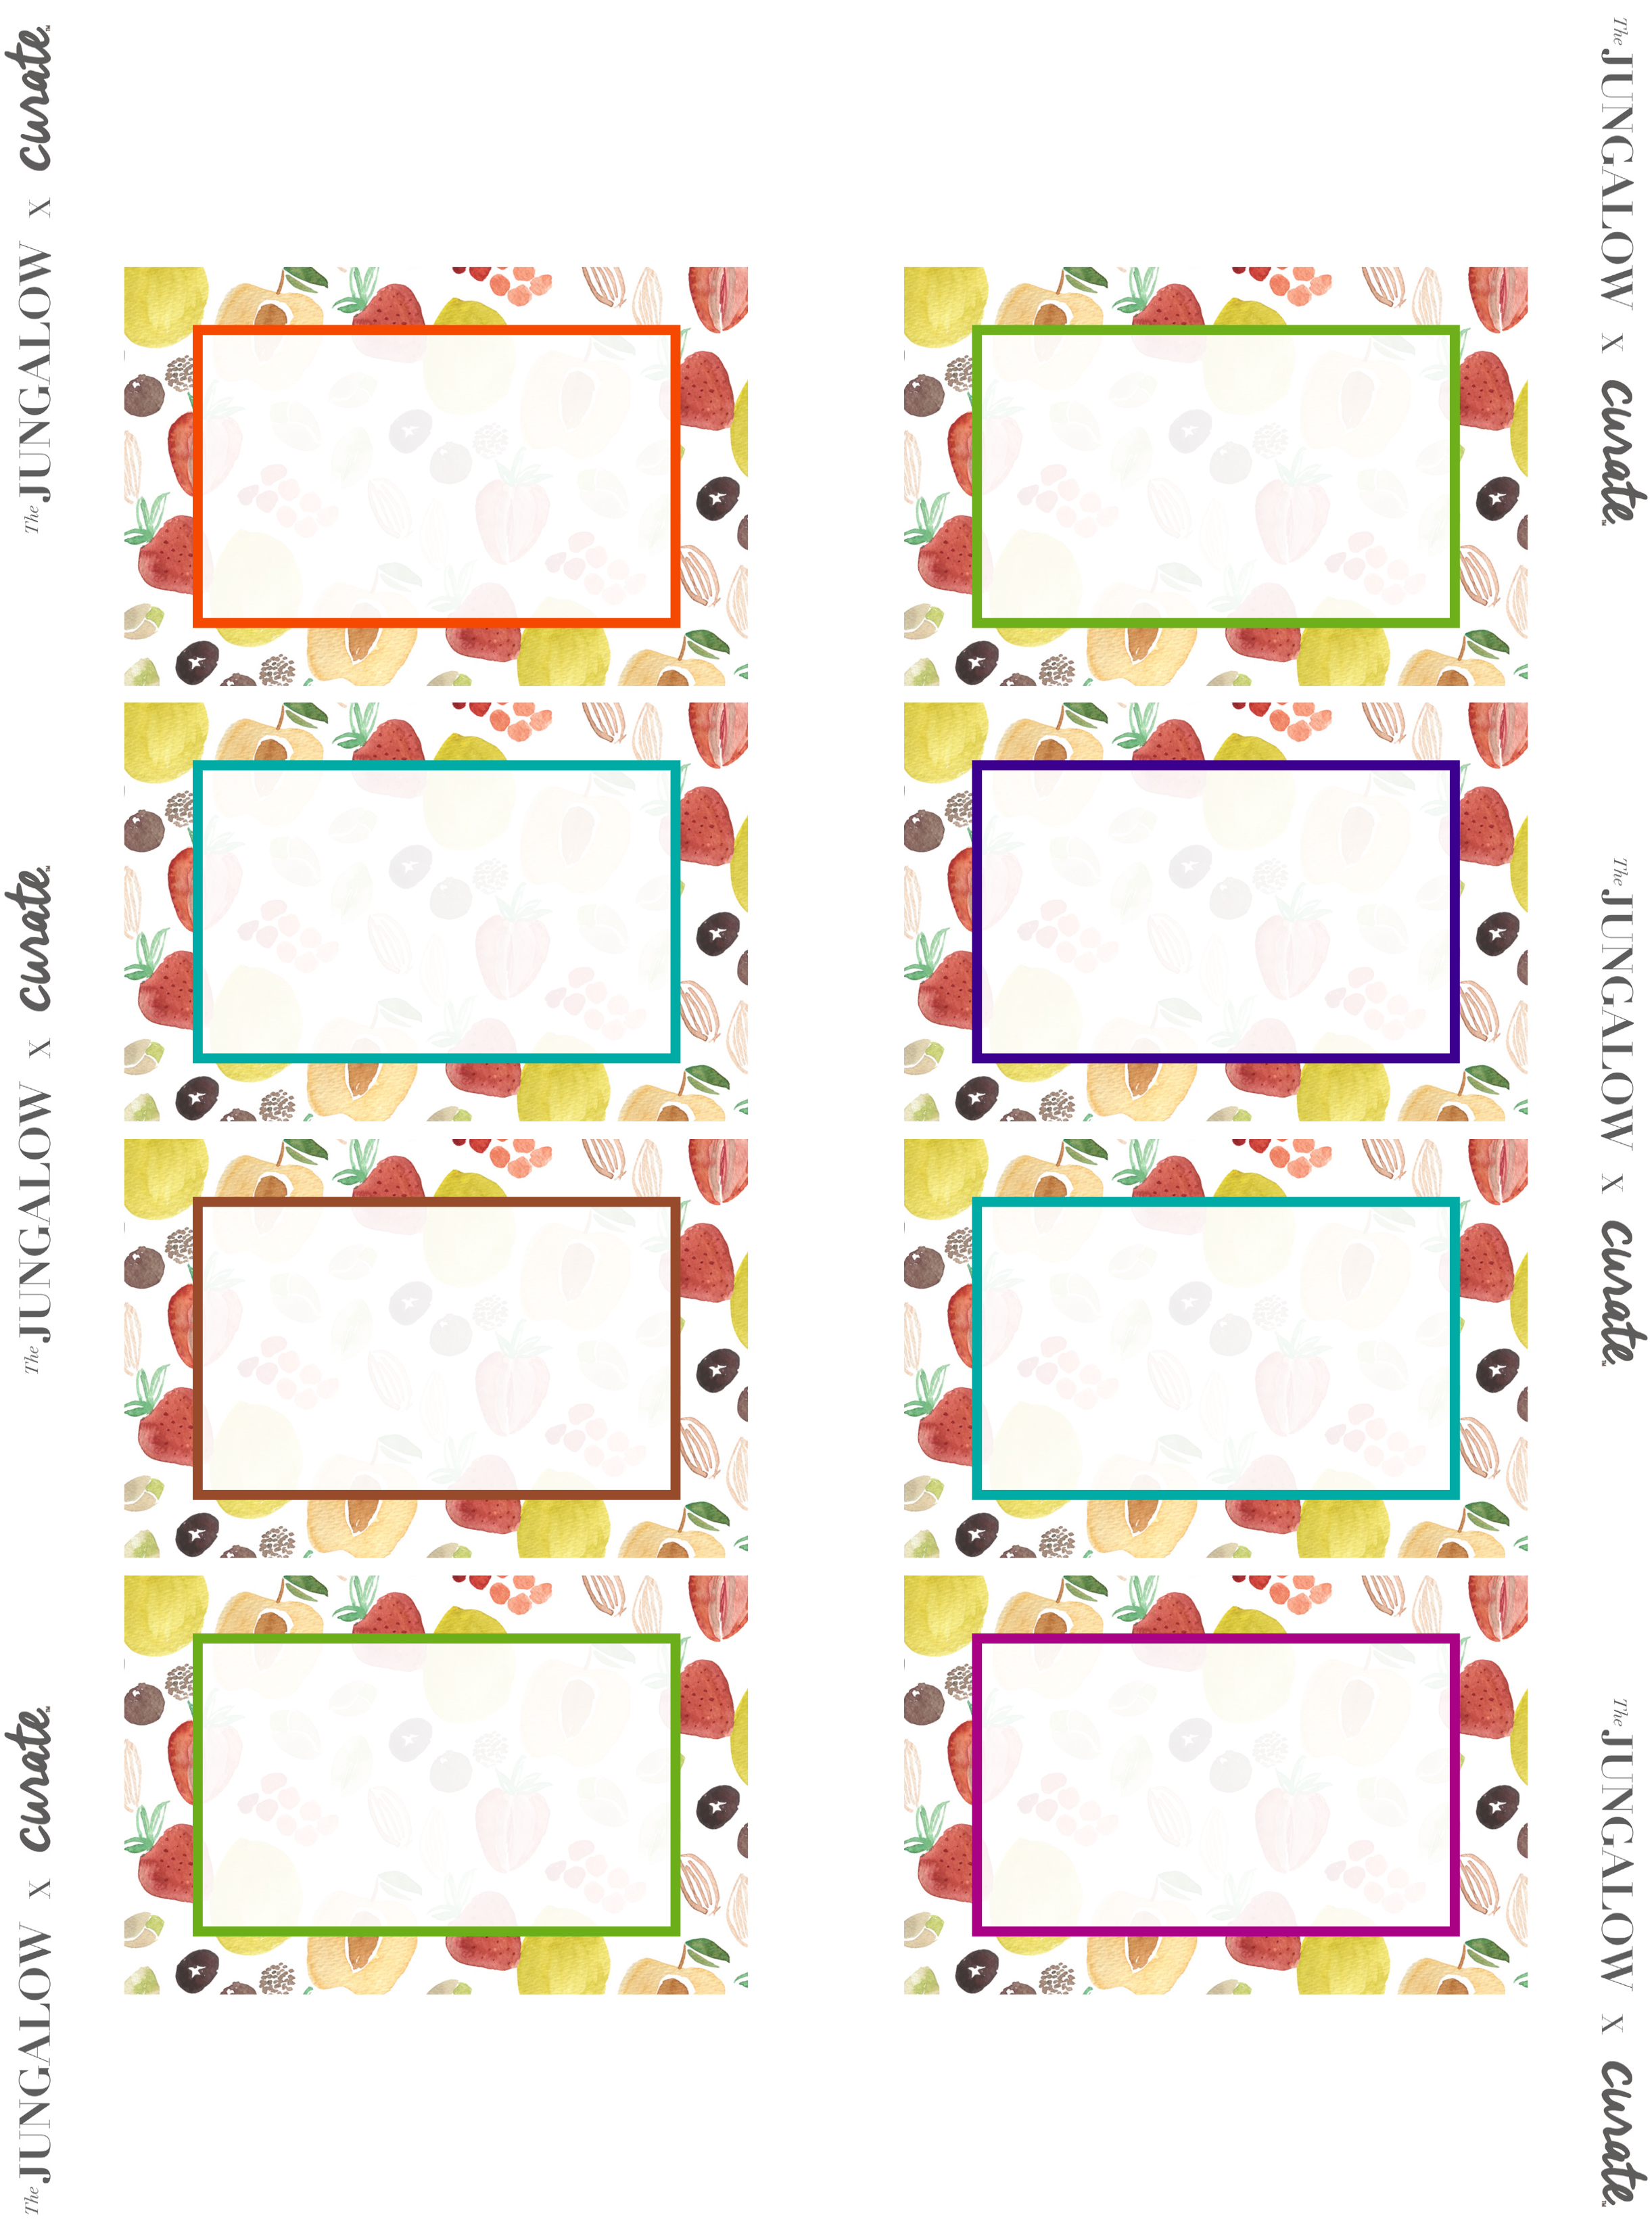 label template-rectangle2